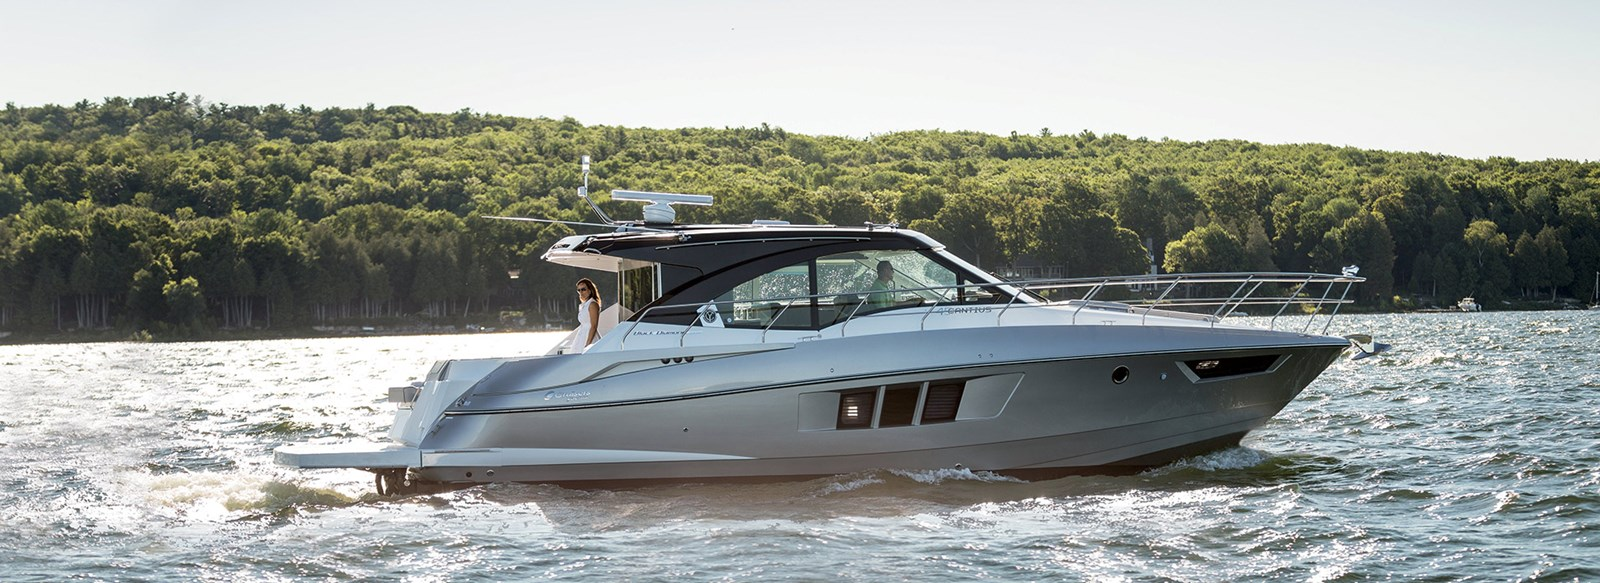 New Cruisers 45 Cantius Yachts For Sale